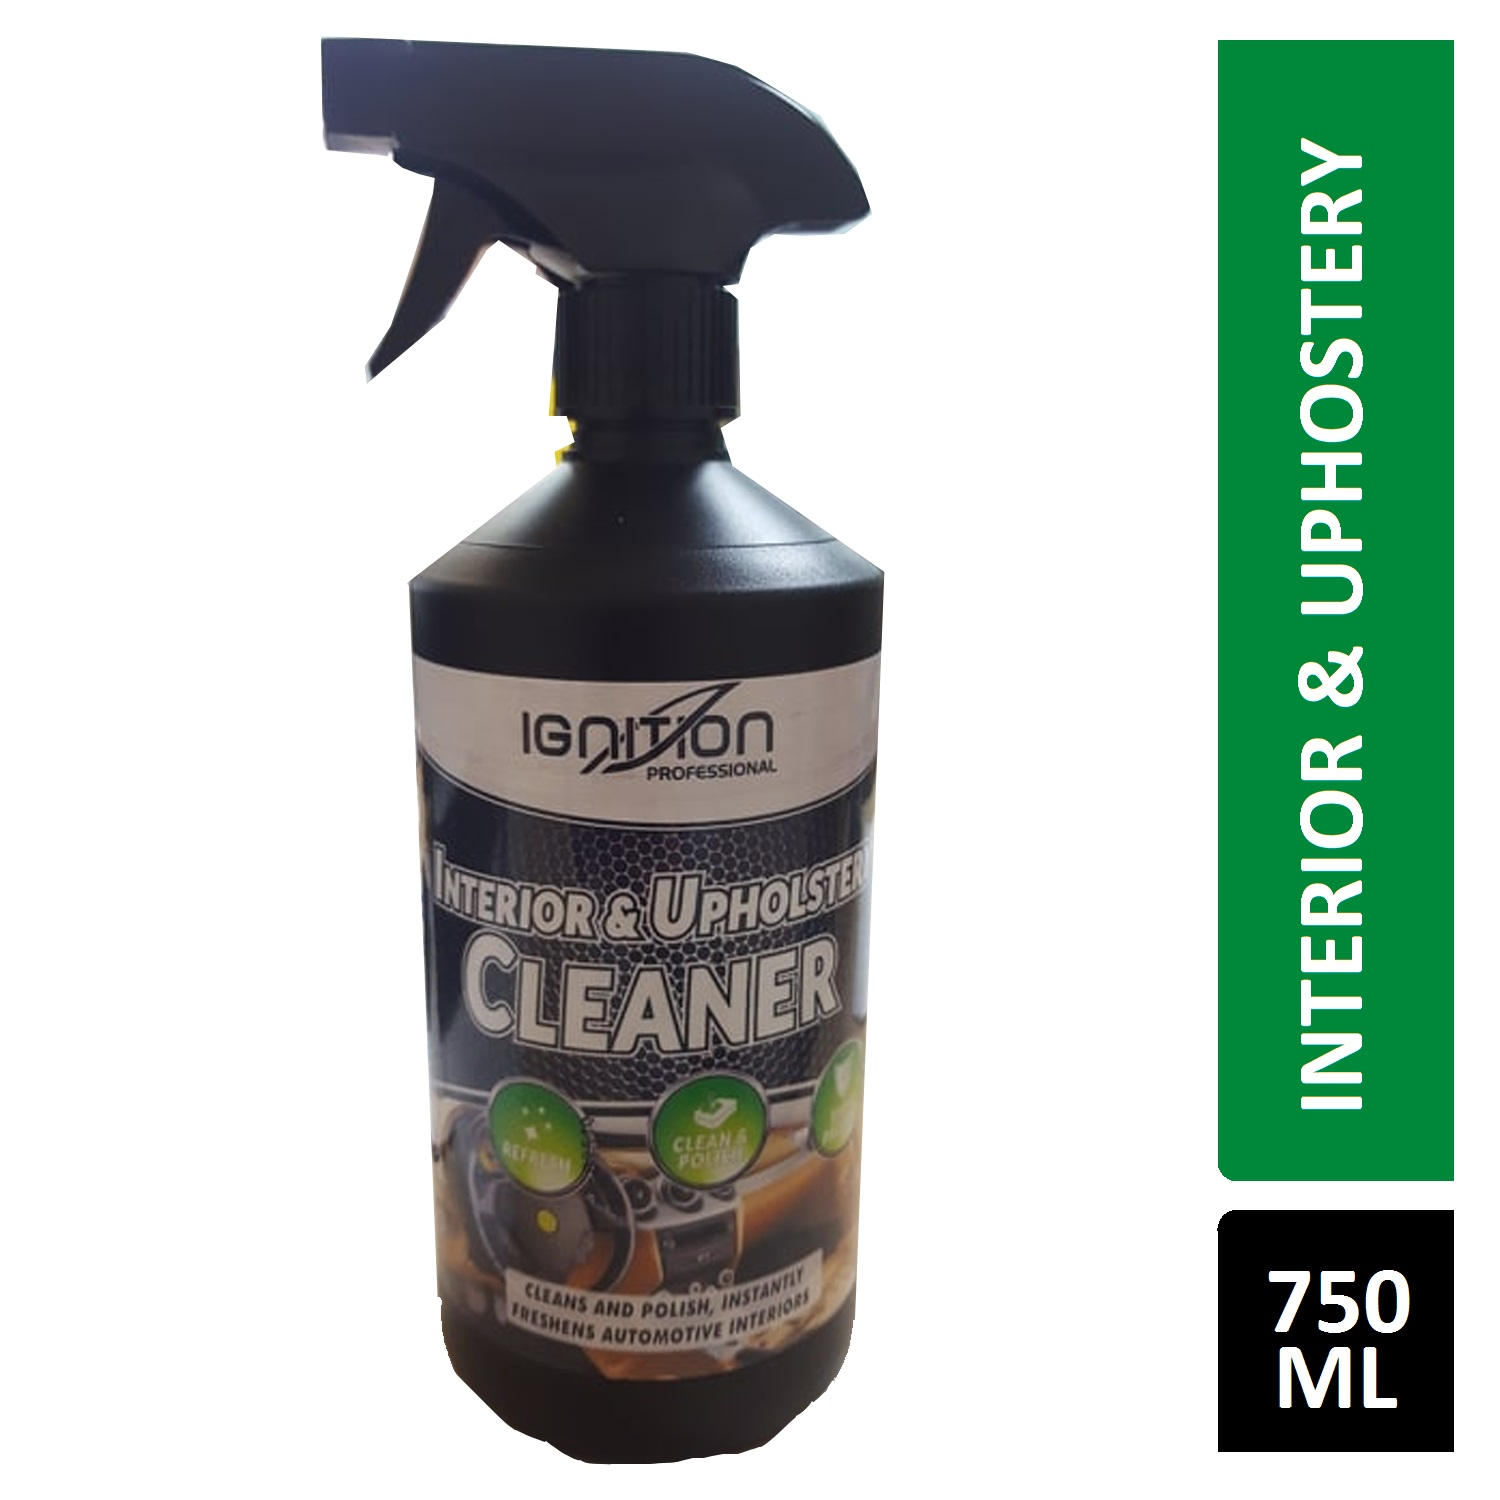 IGNITION INTERIOR & UPHOLSTERY CLEANER 750ML